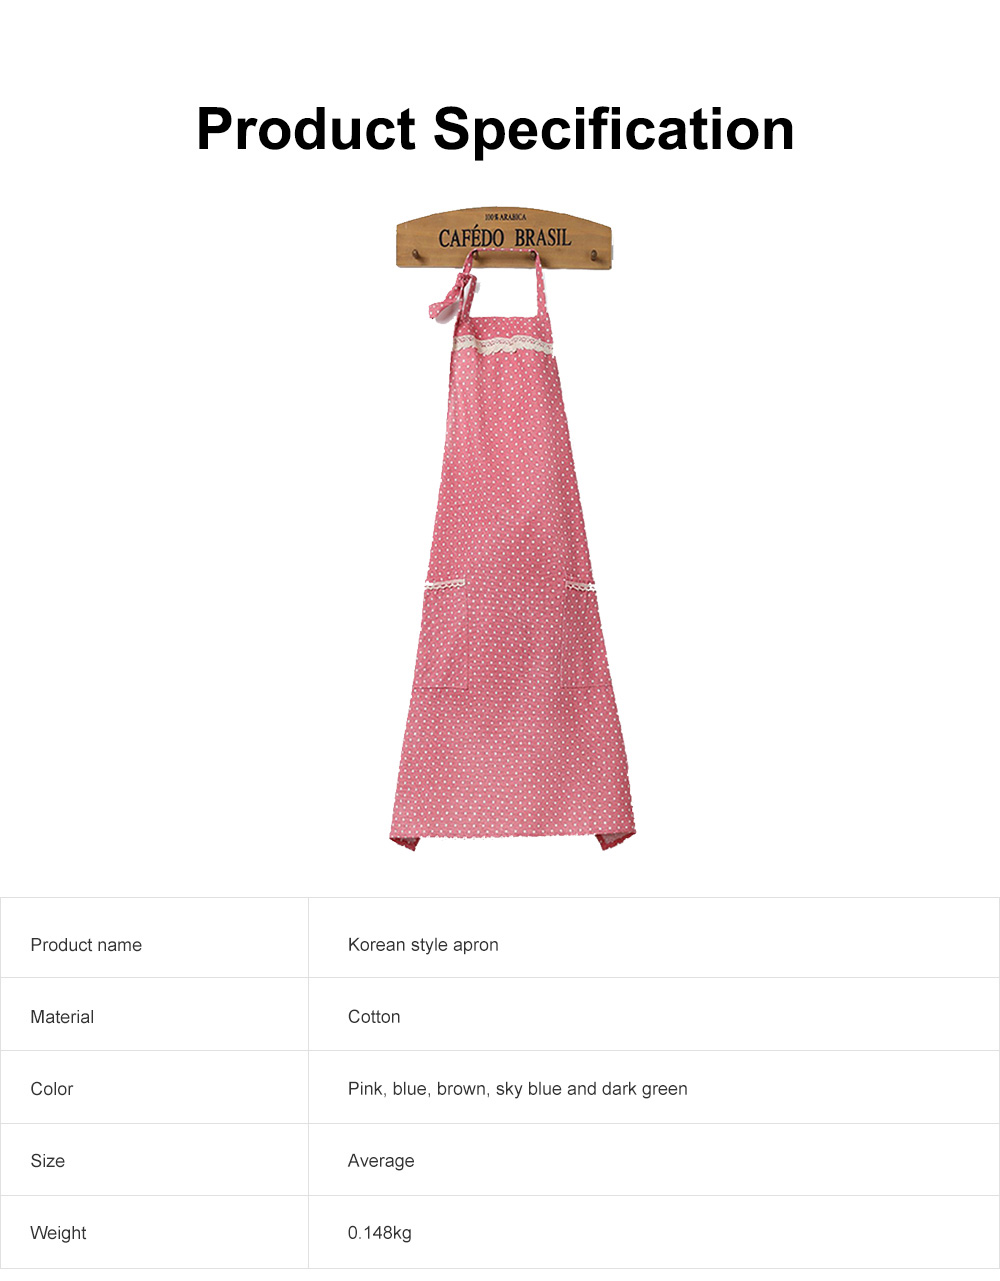 Lacework Edge Five Color Wave Point Apron Household Kitchen Used Pinafore Fashionable Kitchen Accessory 6